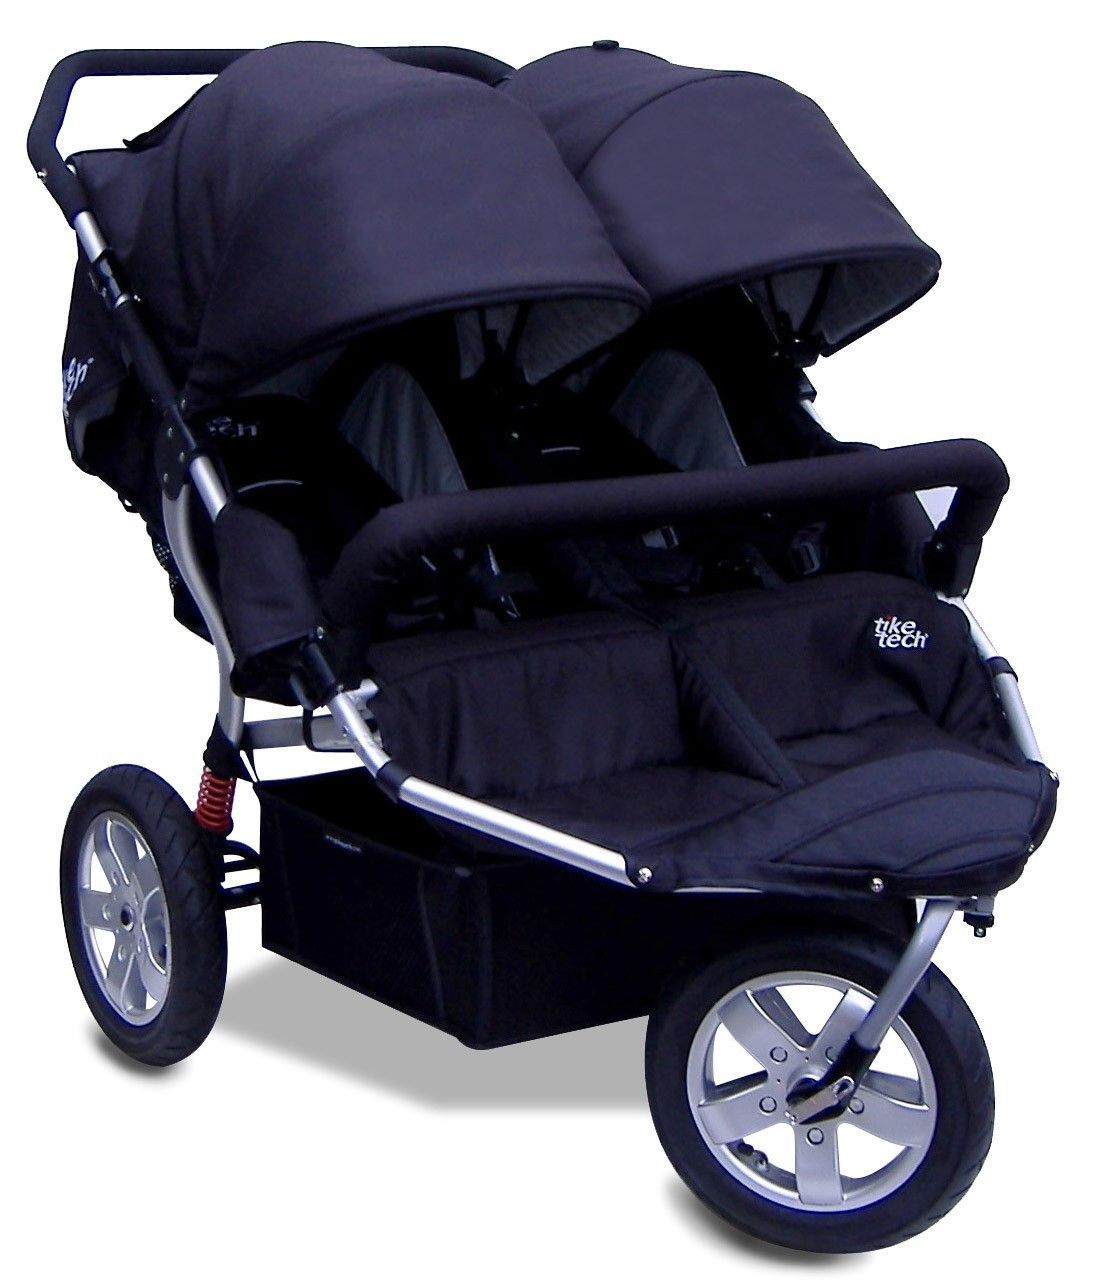 20+ Best double jogging stroller for runners ideas